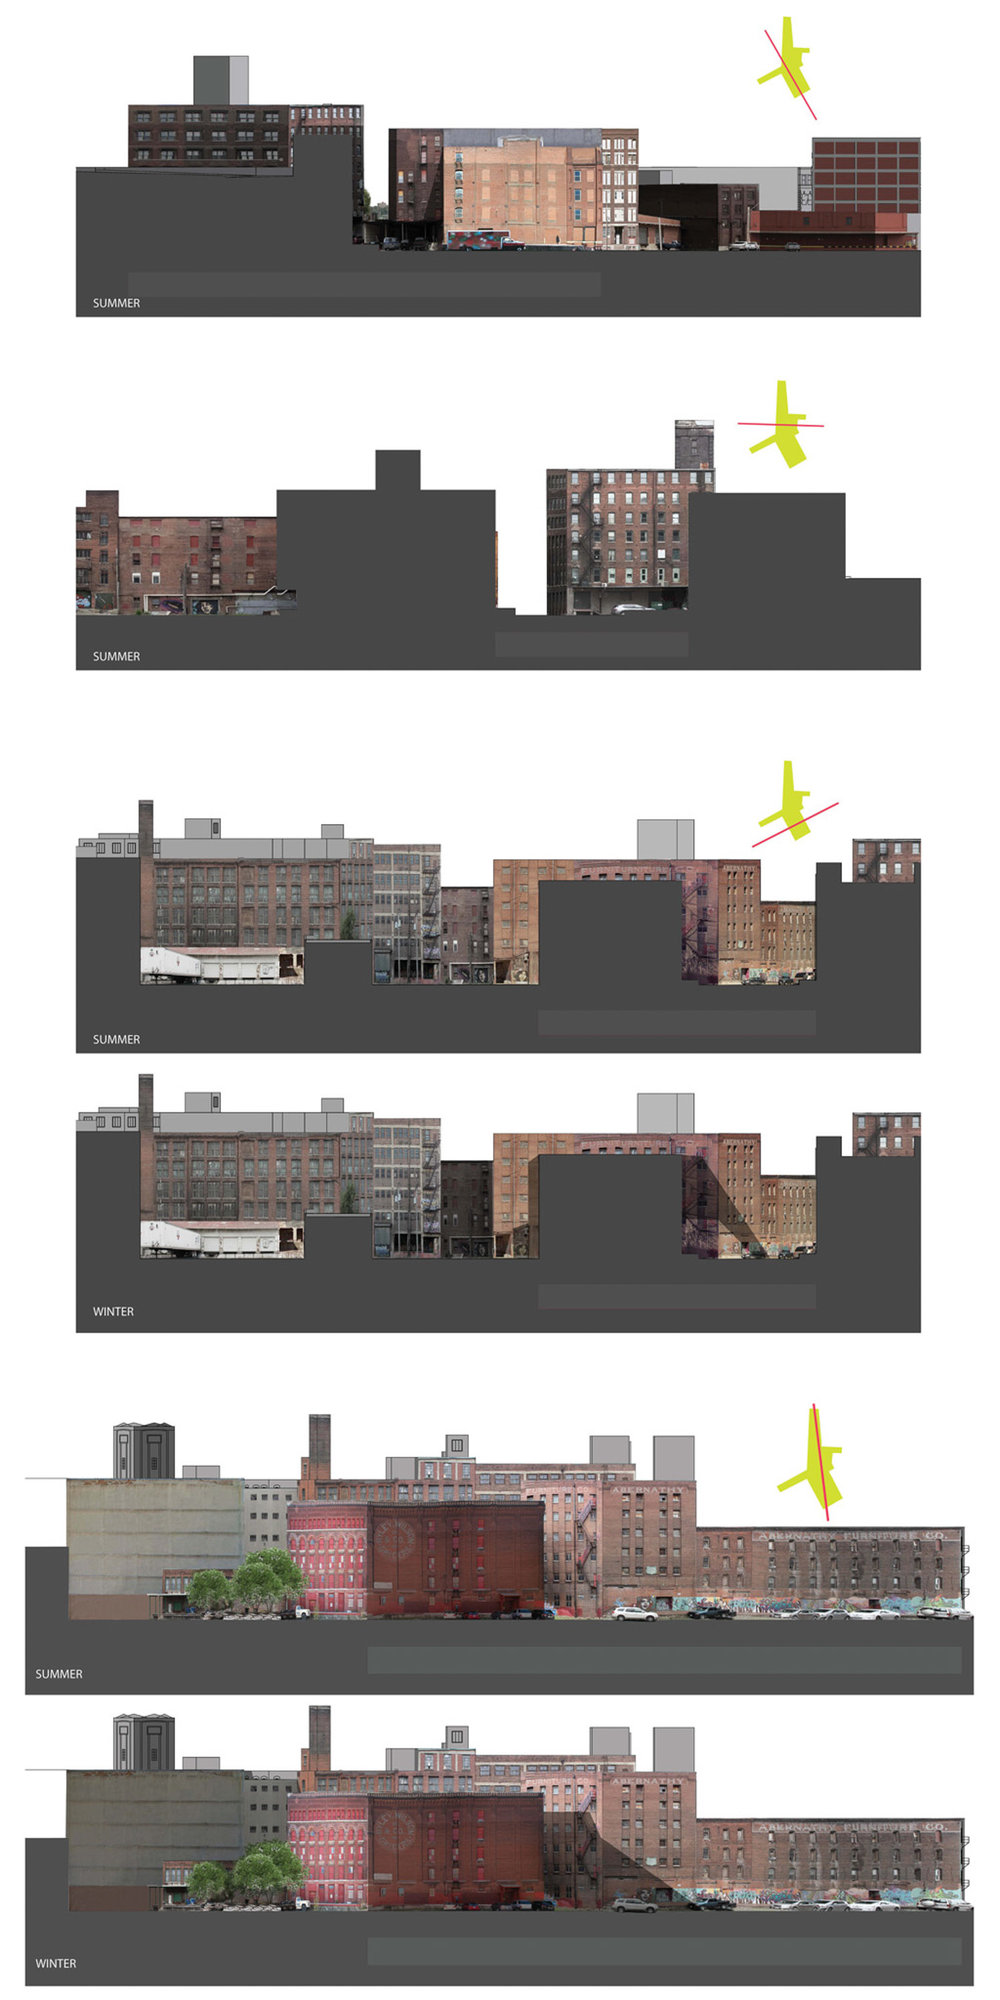 Sectional study of buildings, objects in space, and their generation of shadows.   View a pdf of this image to zoom in.